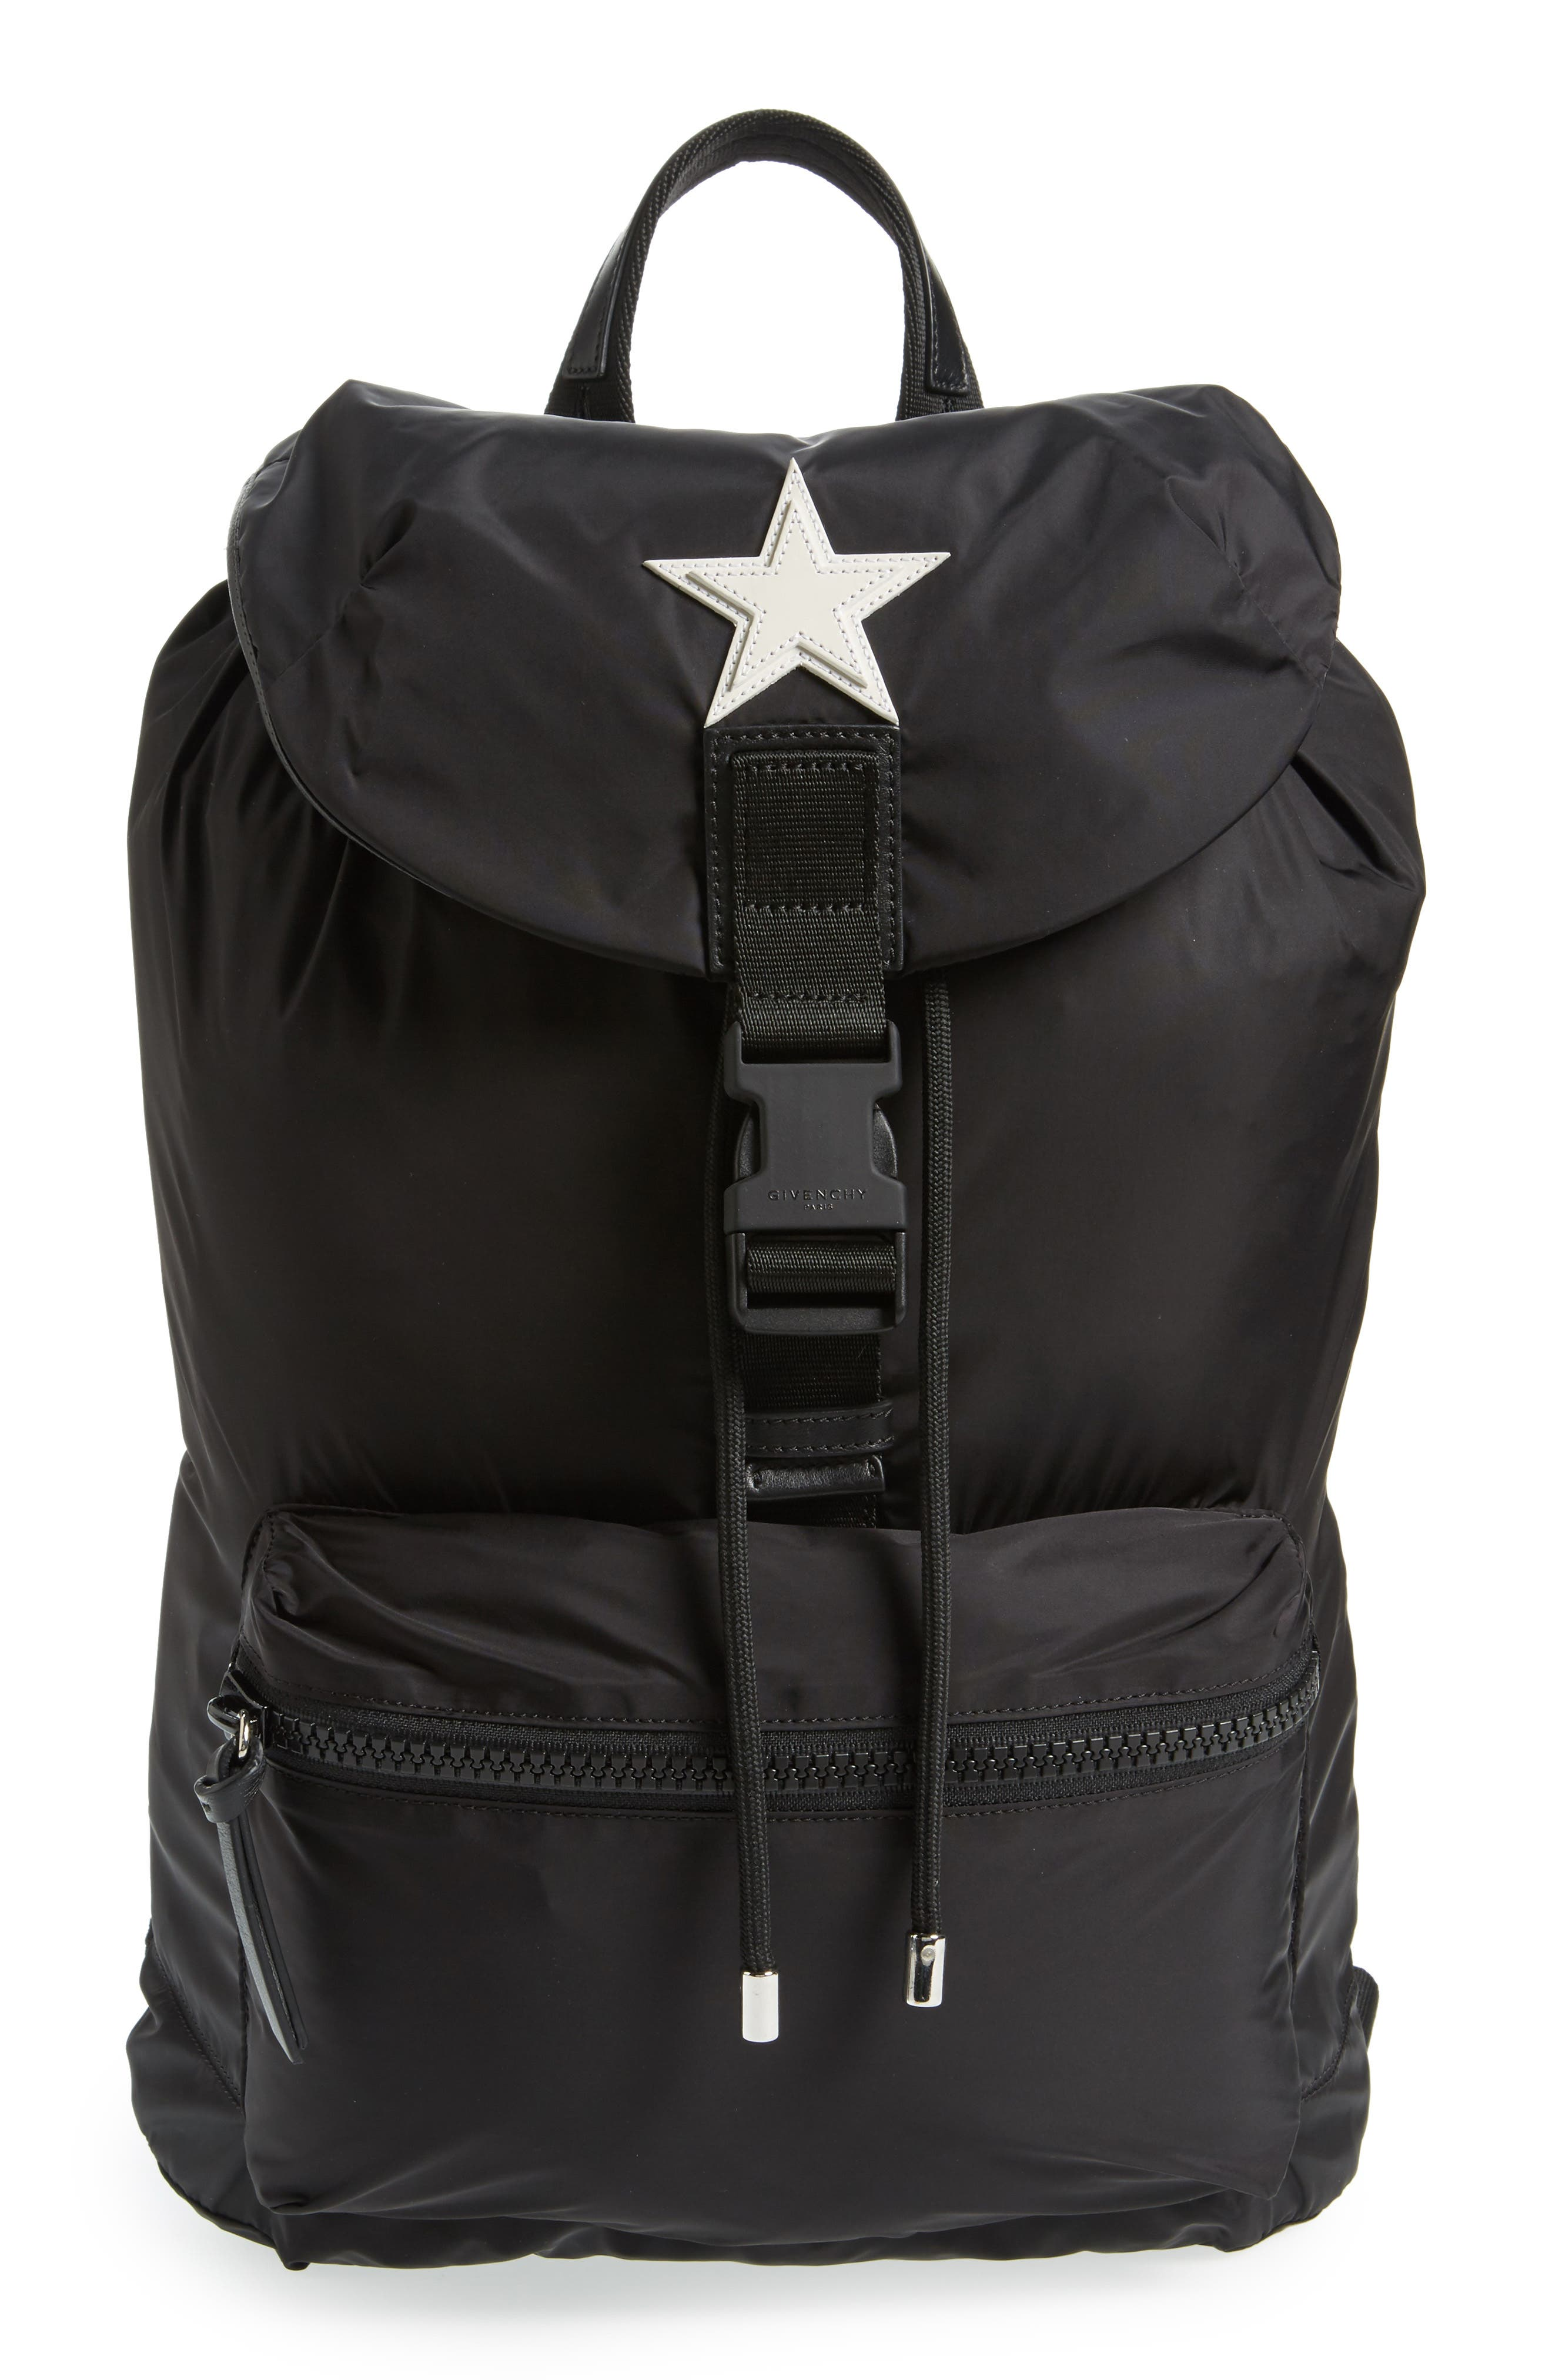 OBS Backpack,                             Main thumbnail 1, color,                             001